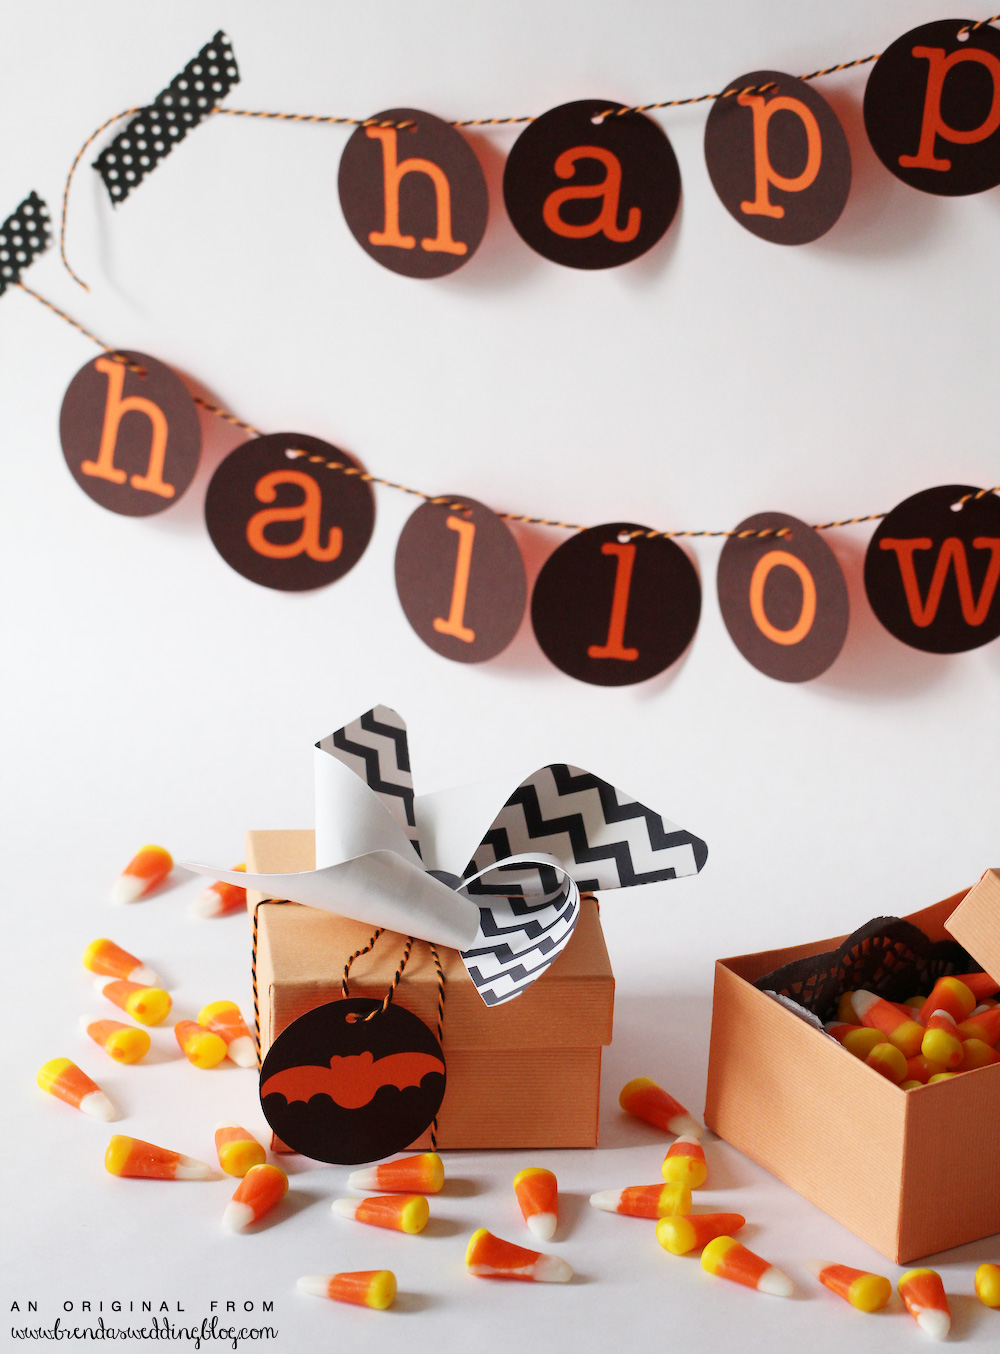 DIY Printable Chevron Pattern Pinwheels and Happy Halloween Banner / from www.BrendasWeddingBlog.com